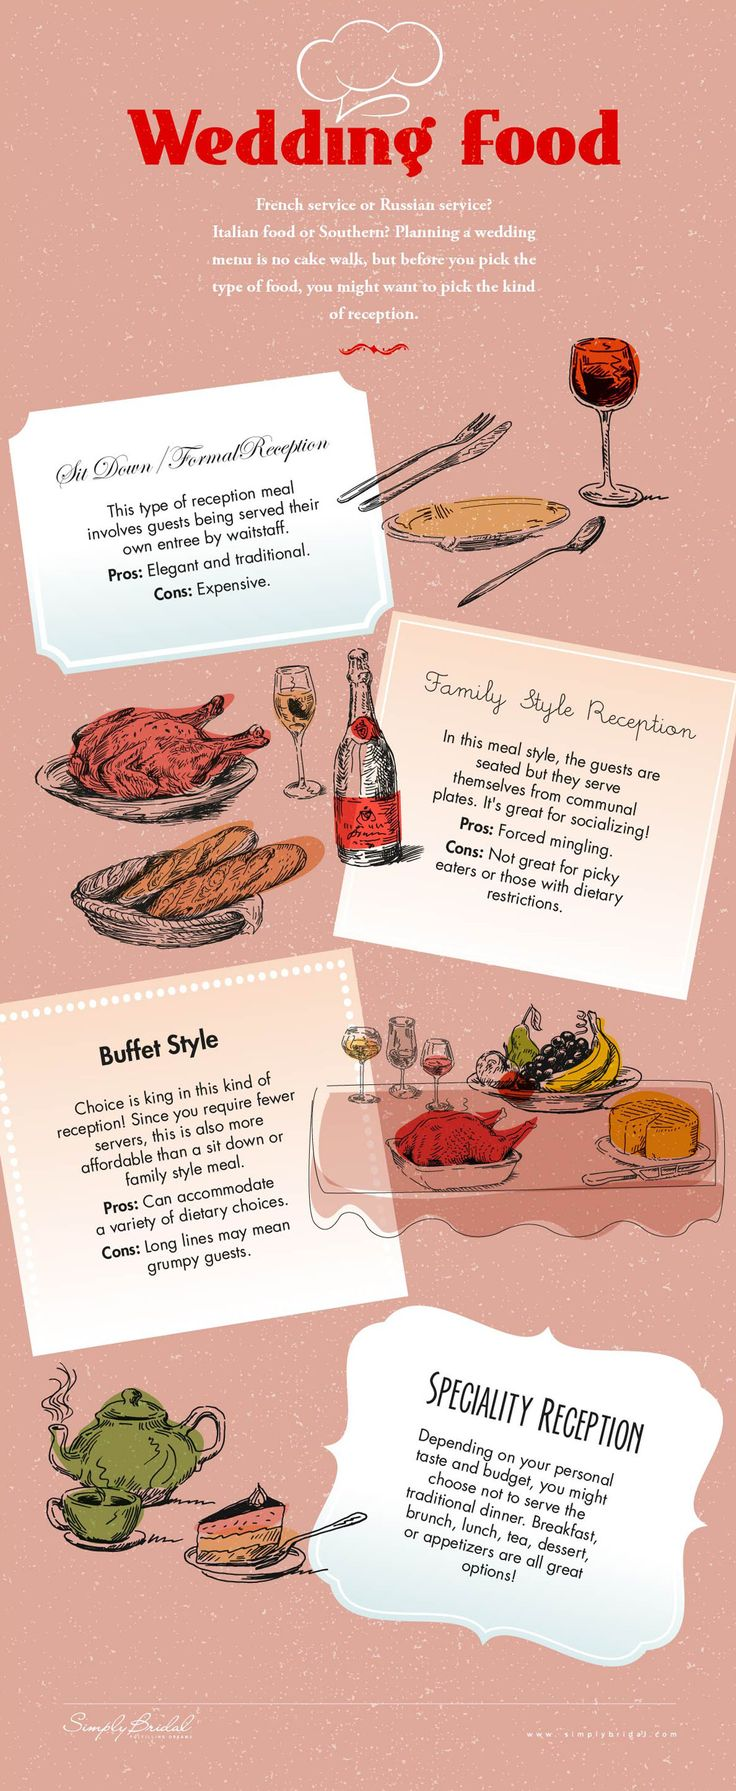 How to pick your wedding reception food